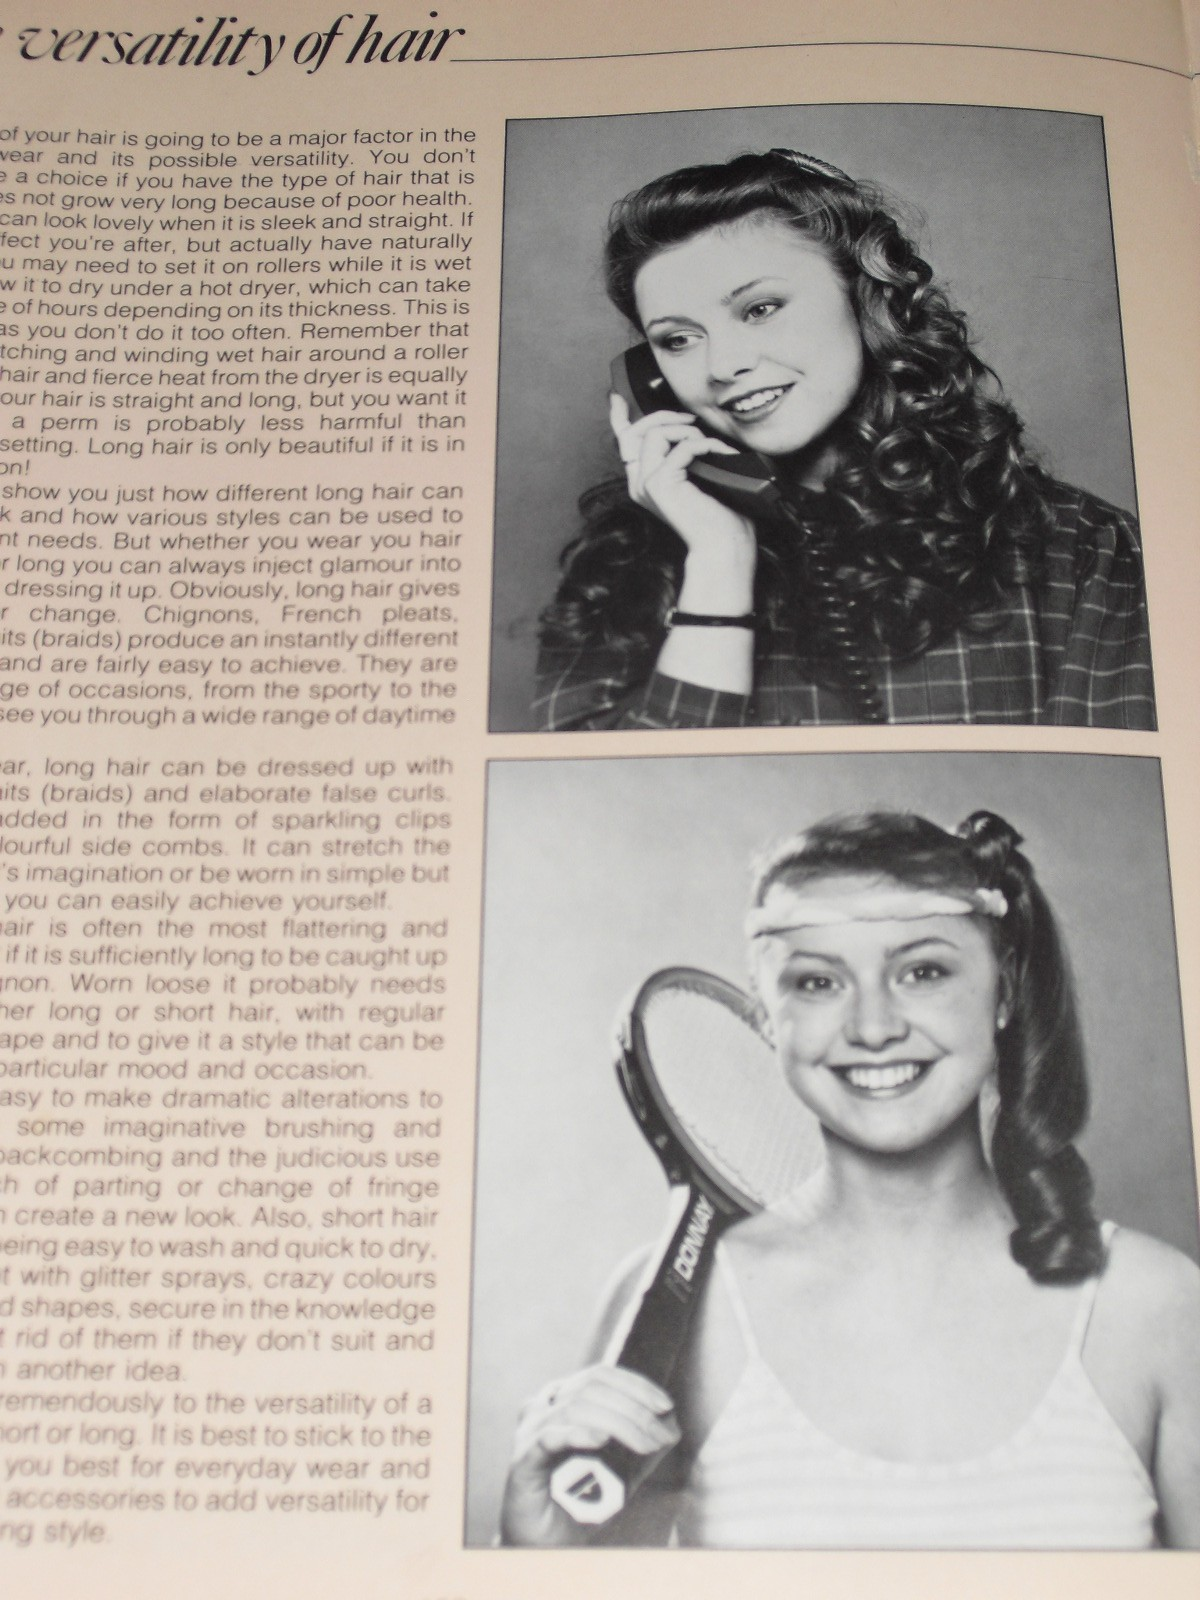 2 pictures of the same woman, one with hair down, one in side ponytail